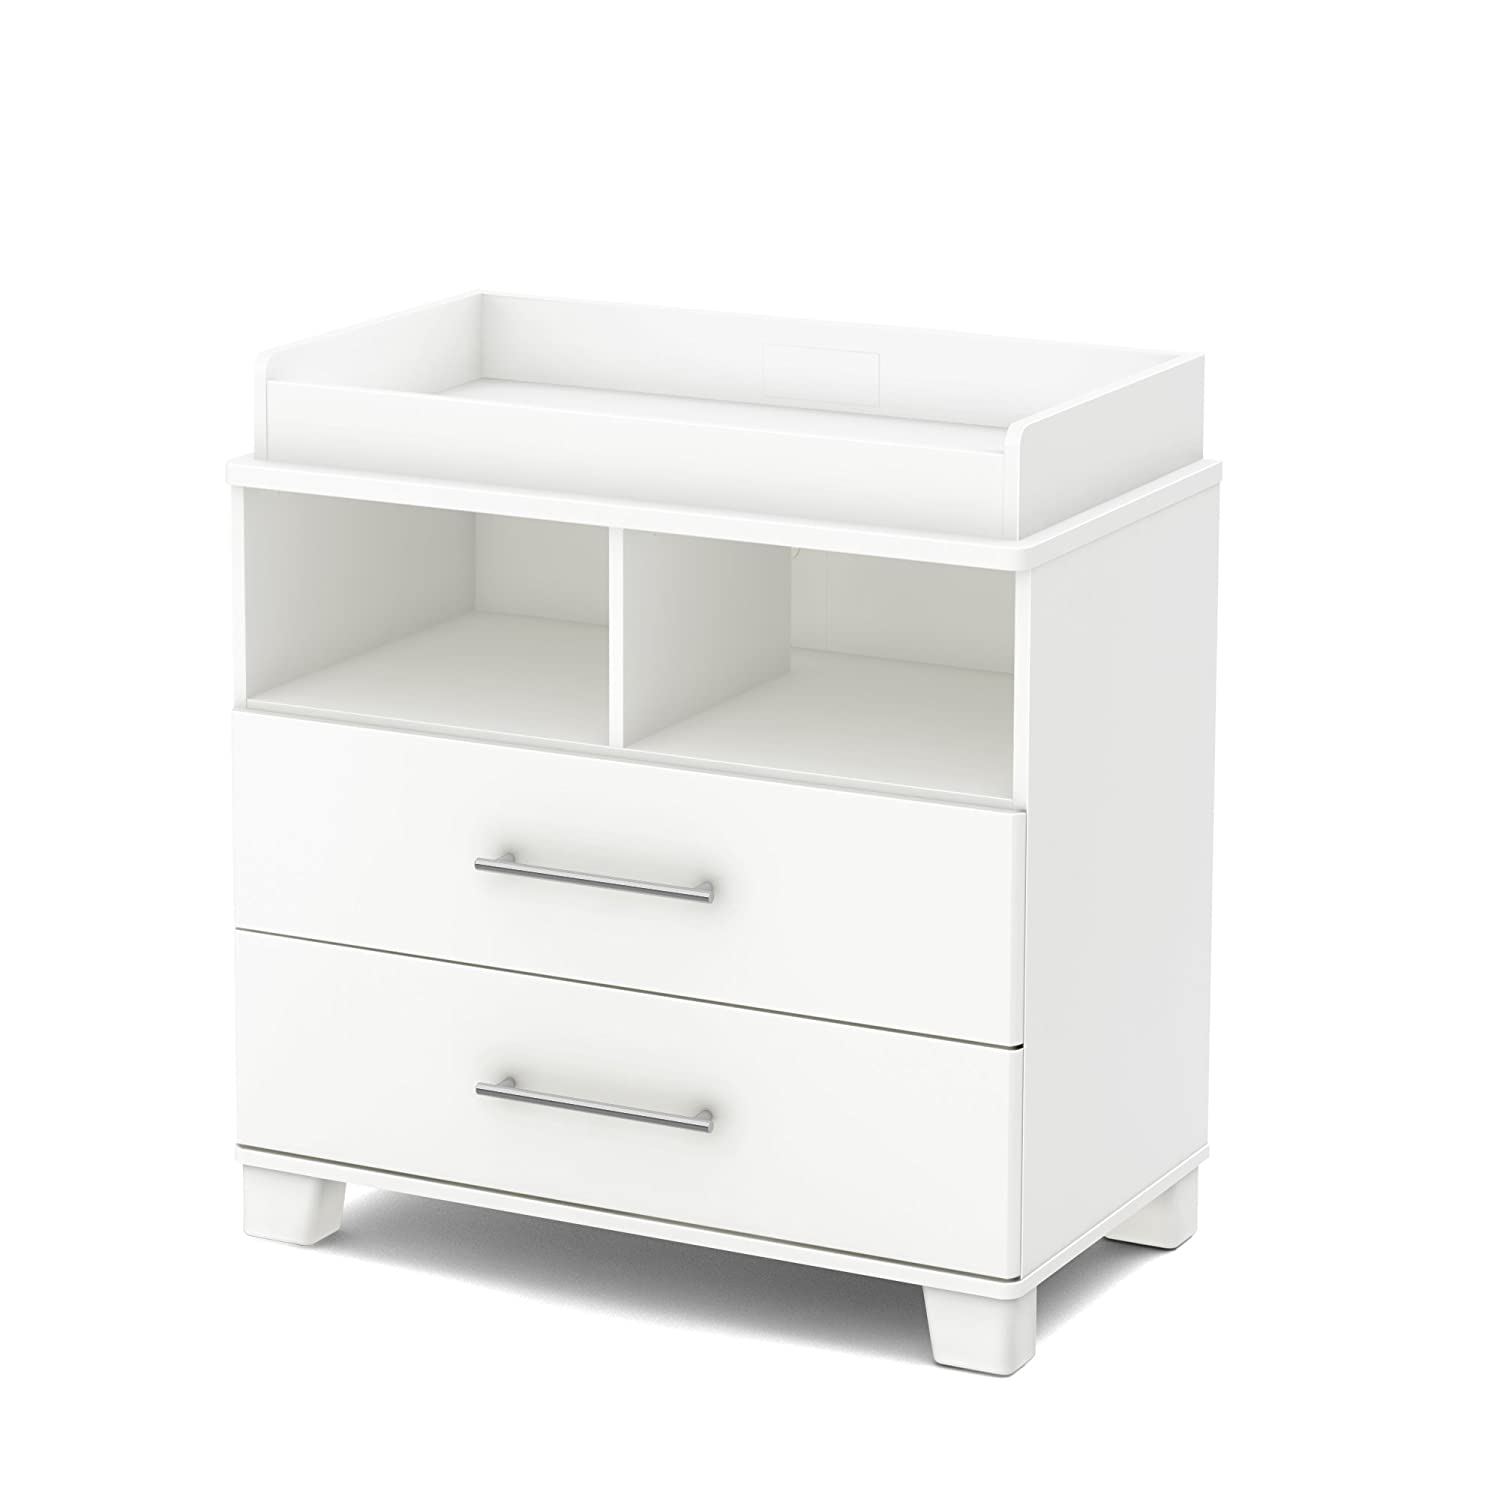 South Shore Cuddly Changing Table with 2 Drawers and open Storage Space, Pure White